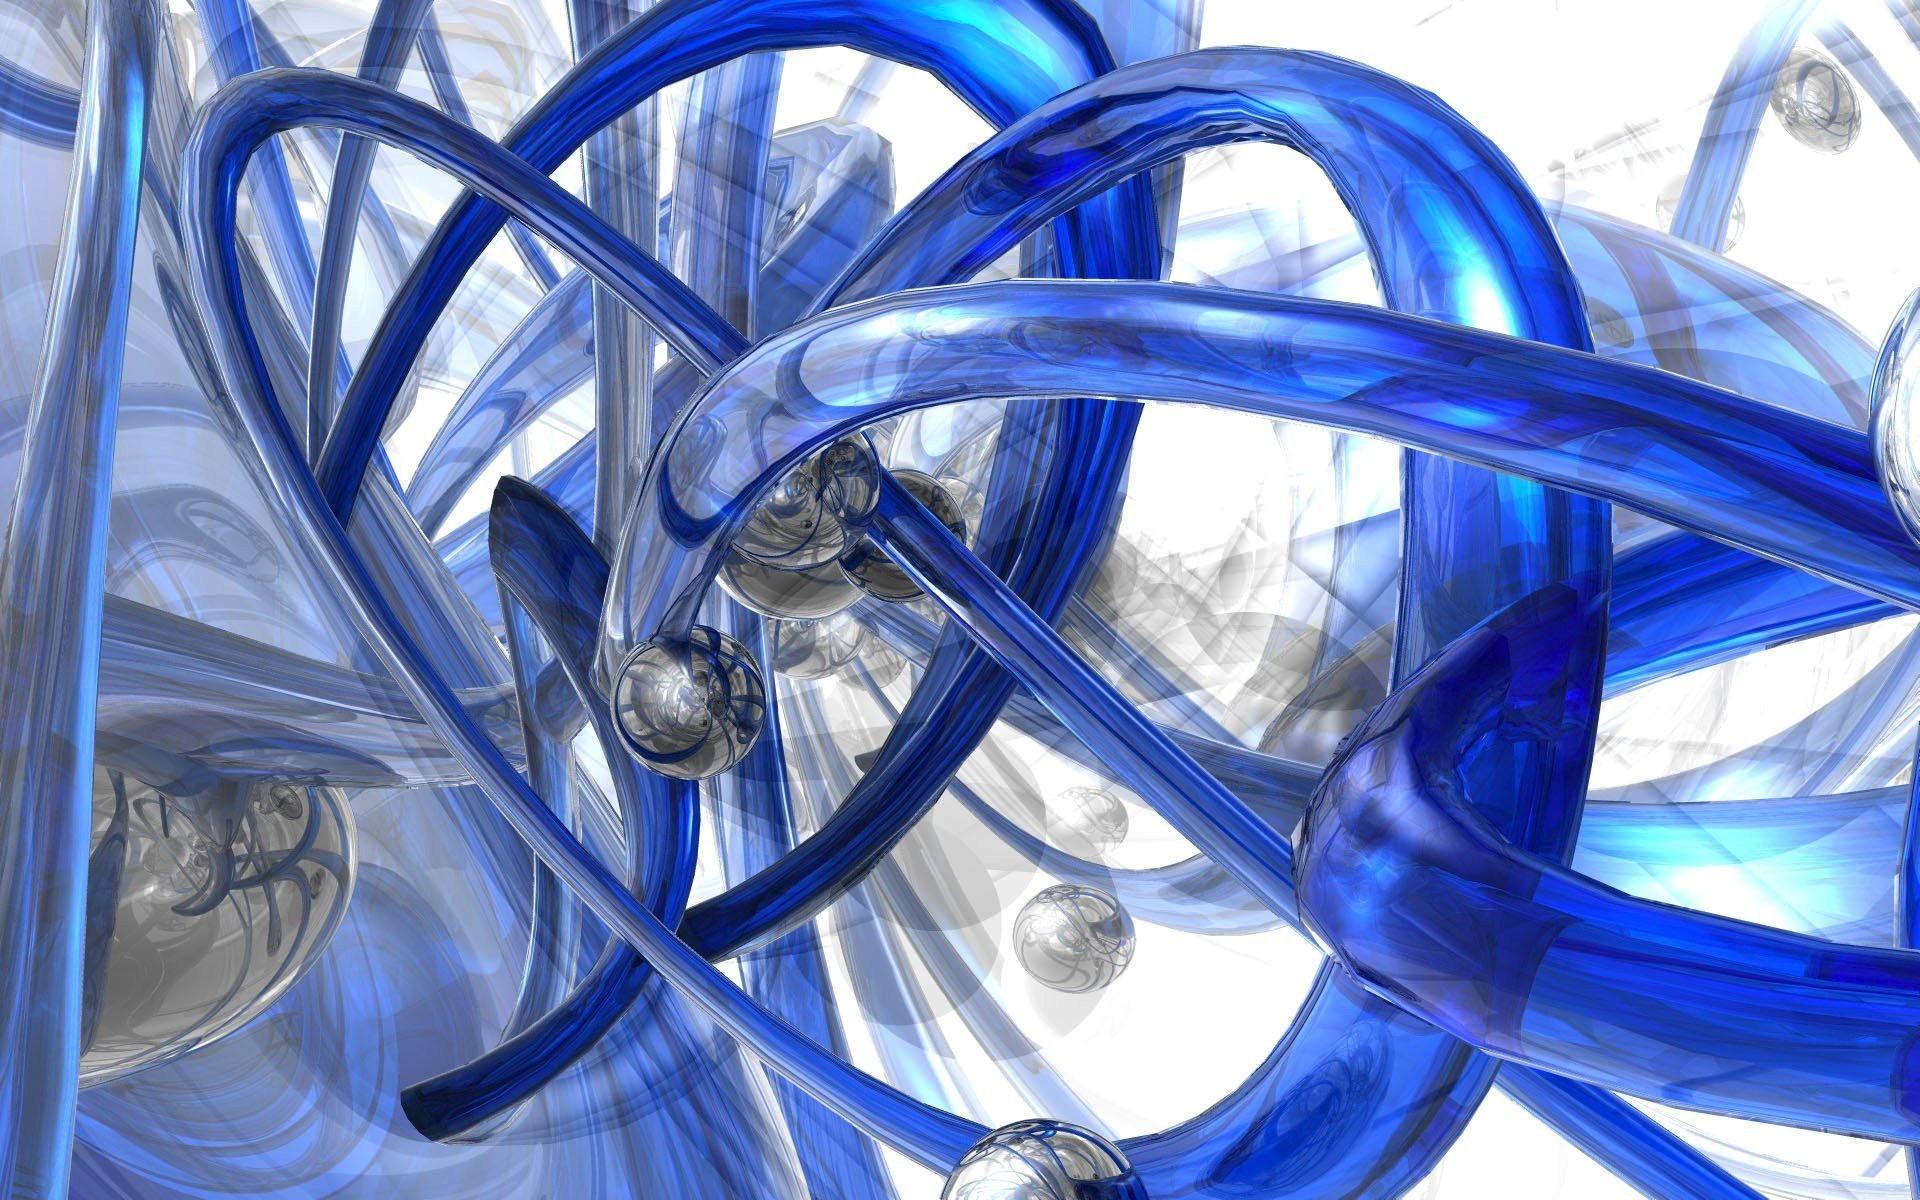 Abstract - Blue  Artistic Abstract 3D CGI Digital Art Wallpaper